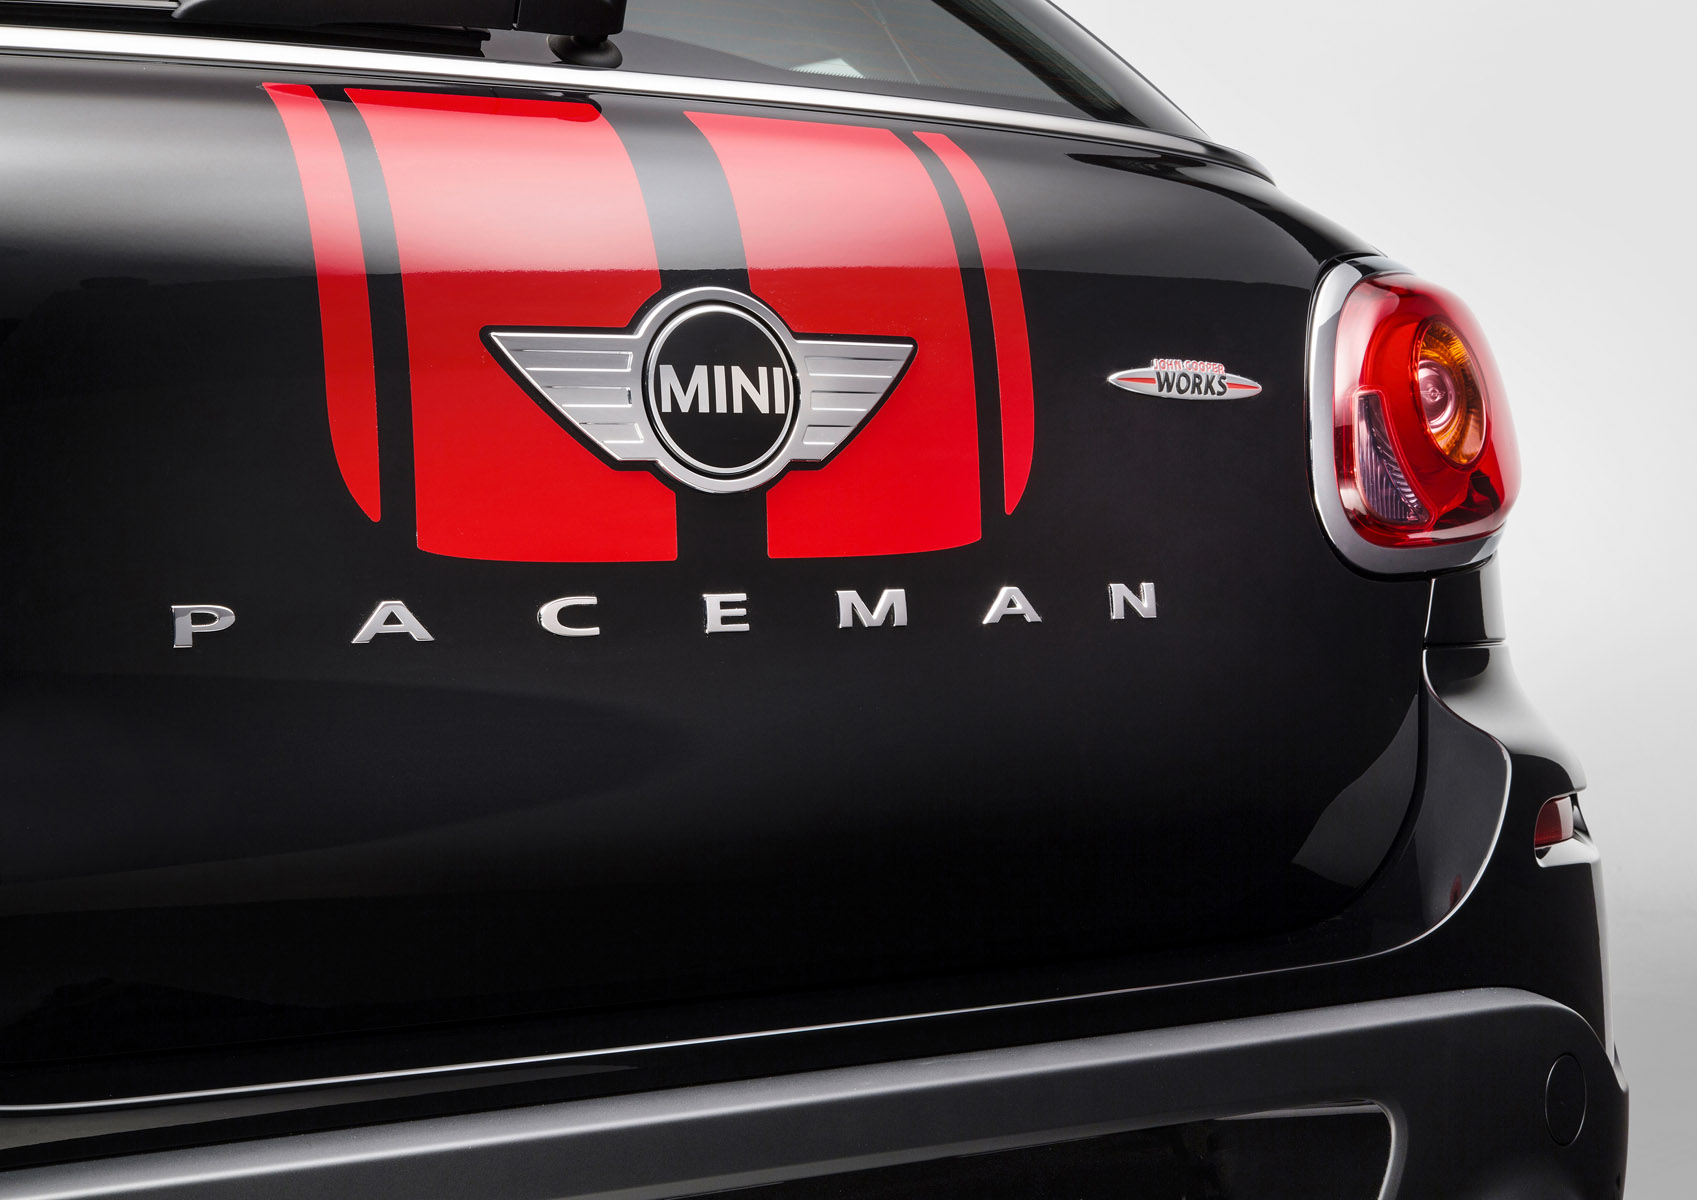 Mini Cooper Logo Mini Car Symbol Meaning And History